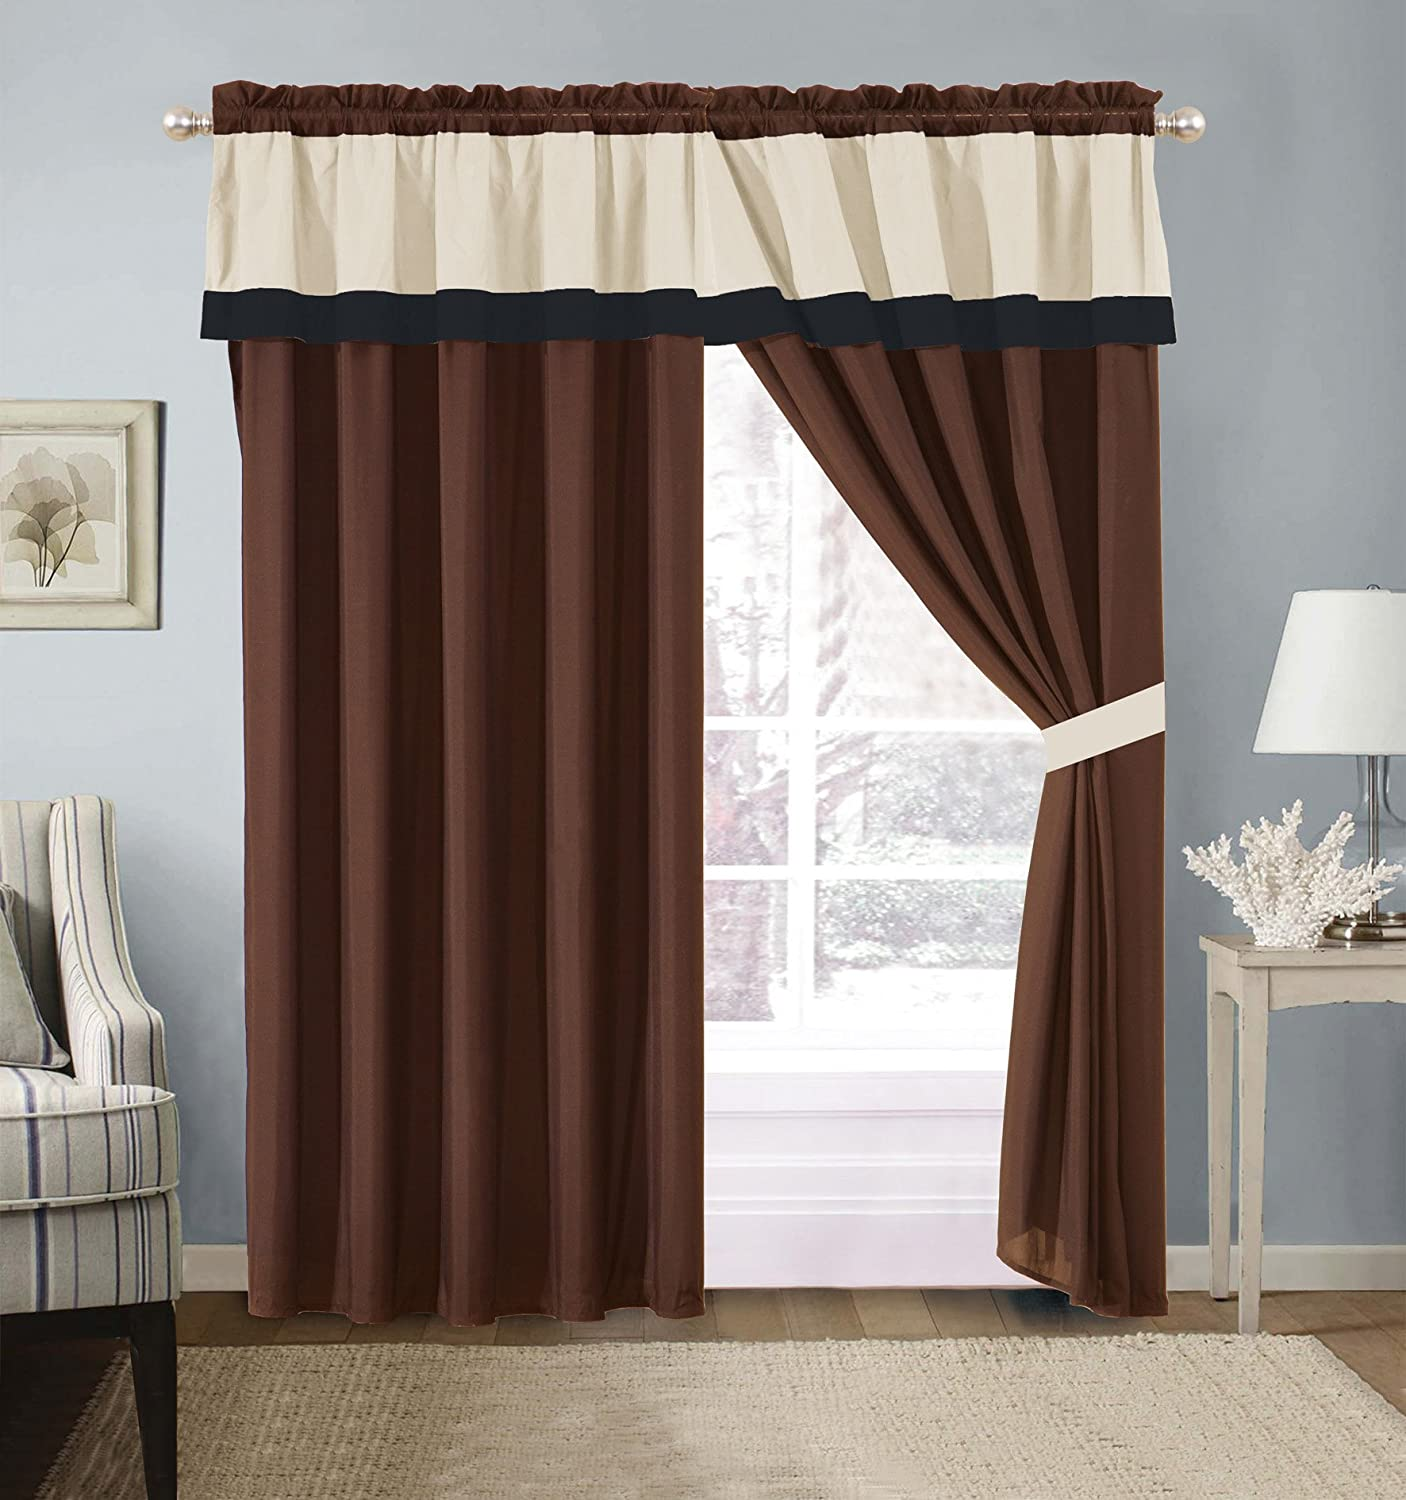 Grand Linen 4 Piece Milan Brown/Black/Beige Color Block Curtain Set with Attached Valance and Sheers